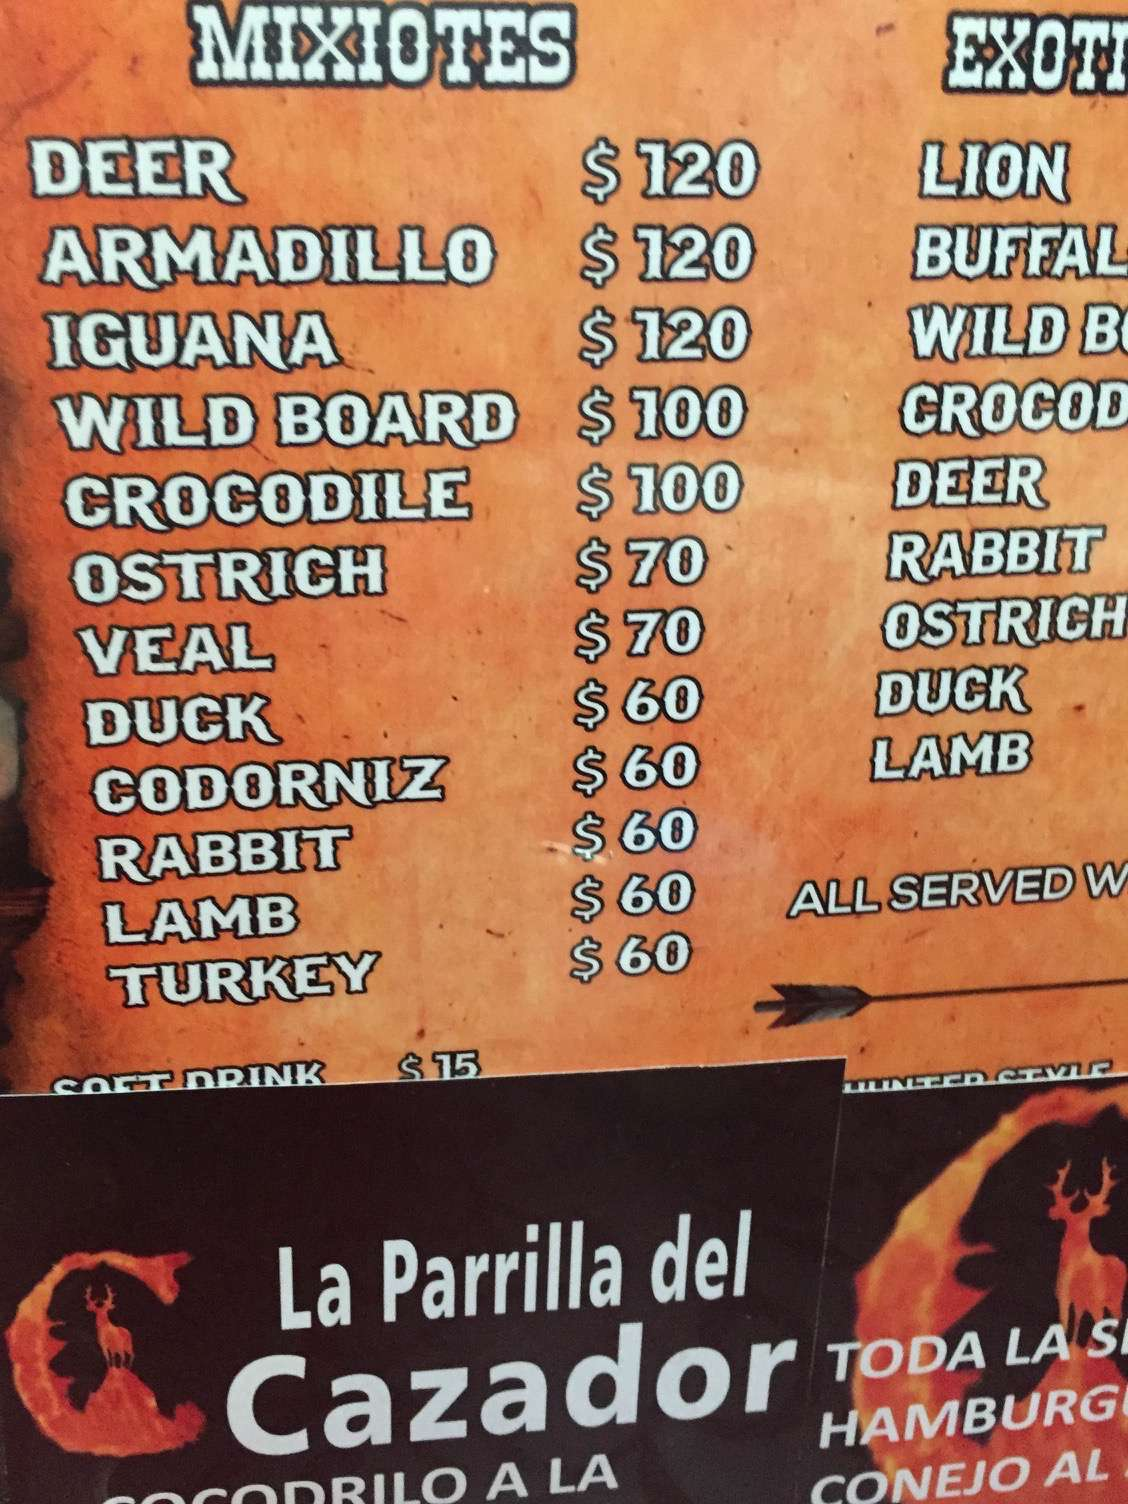 Mexico City is a meat-lover's paradise as this menu from a food walking tour attests.